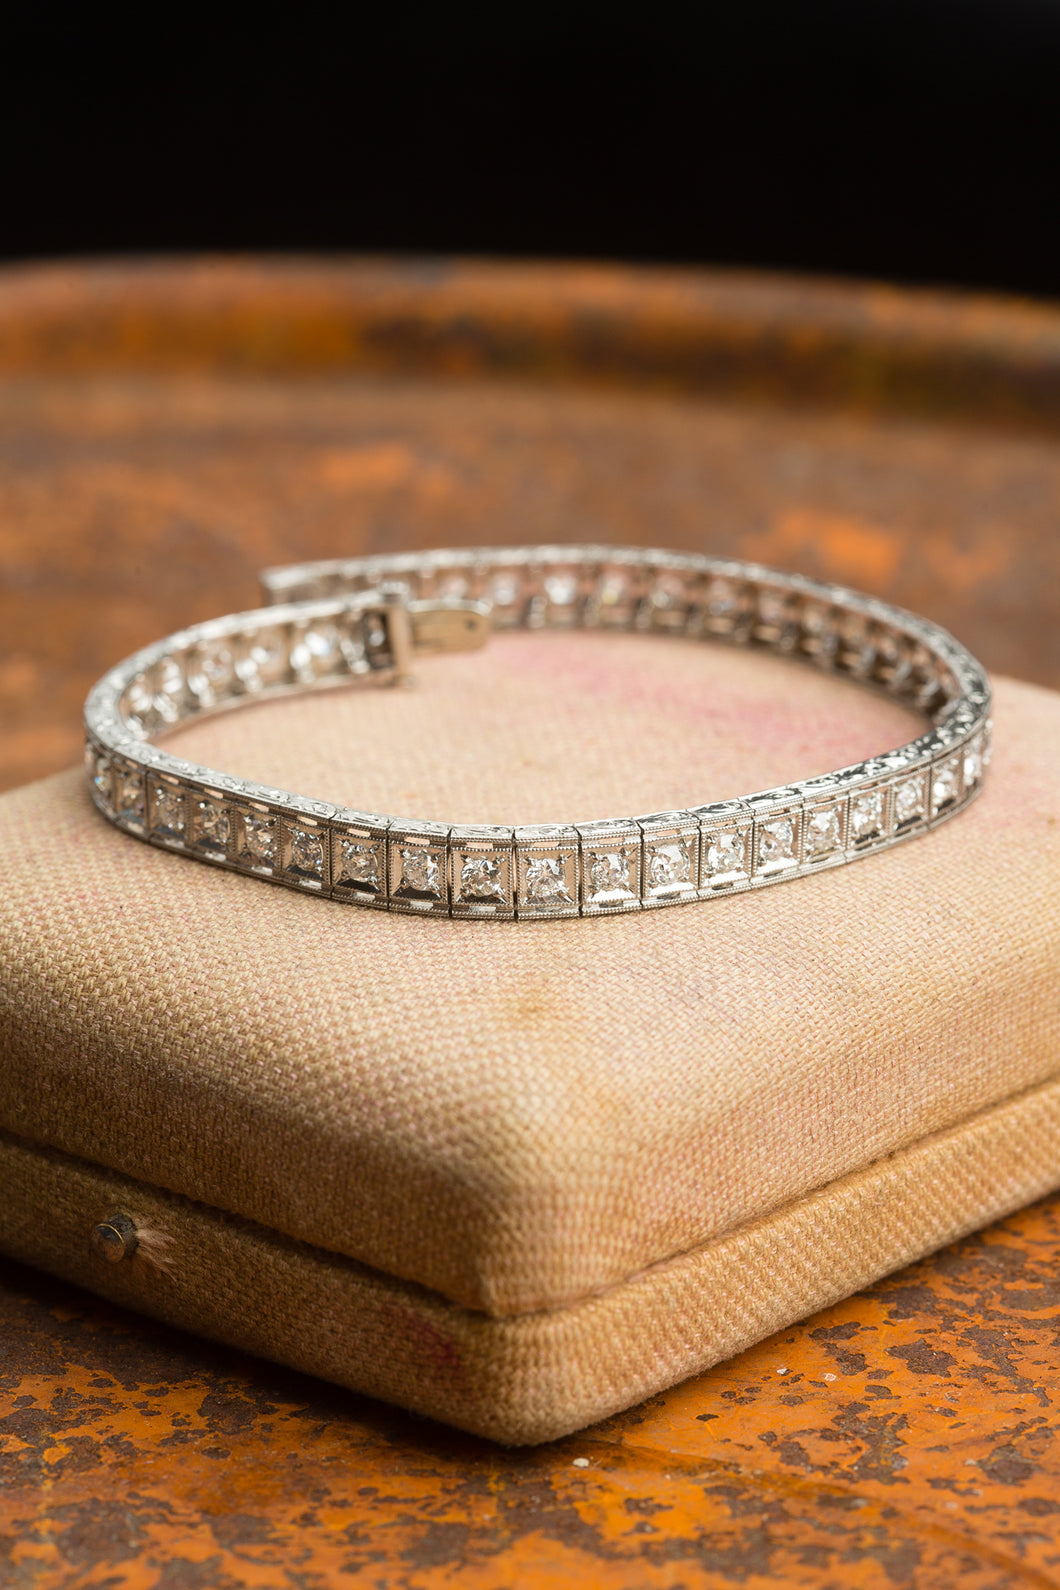 White Gold 5cttw Vintage Diamond Bracelet